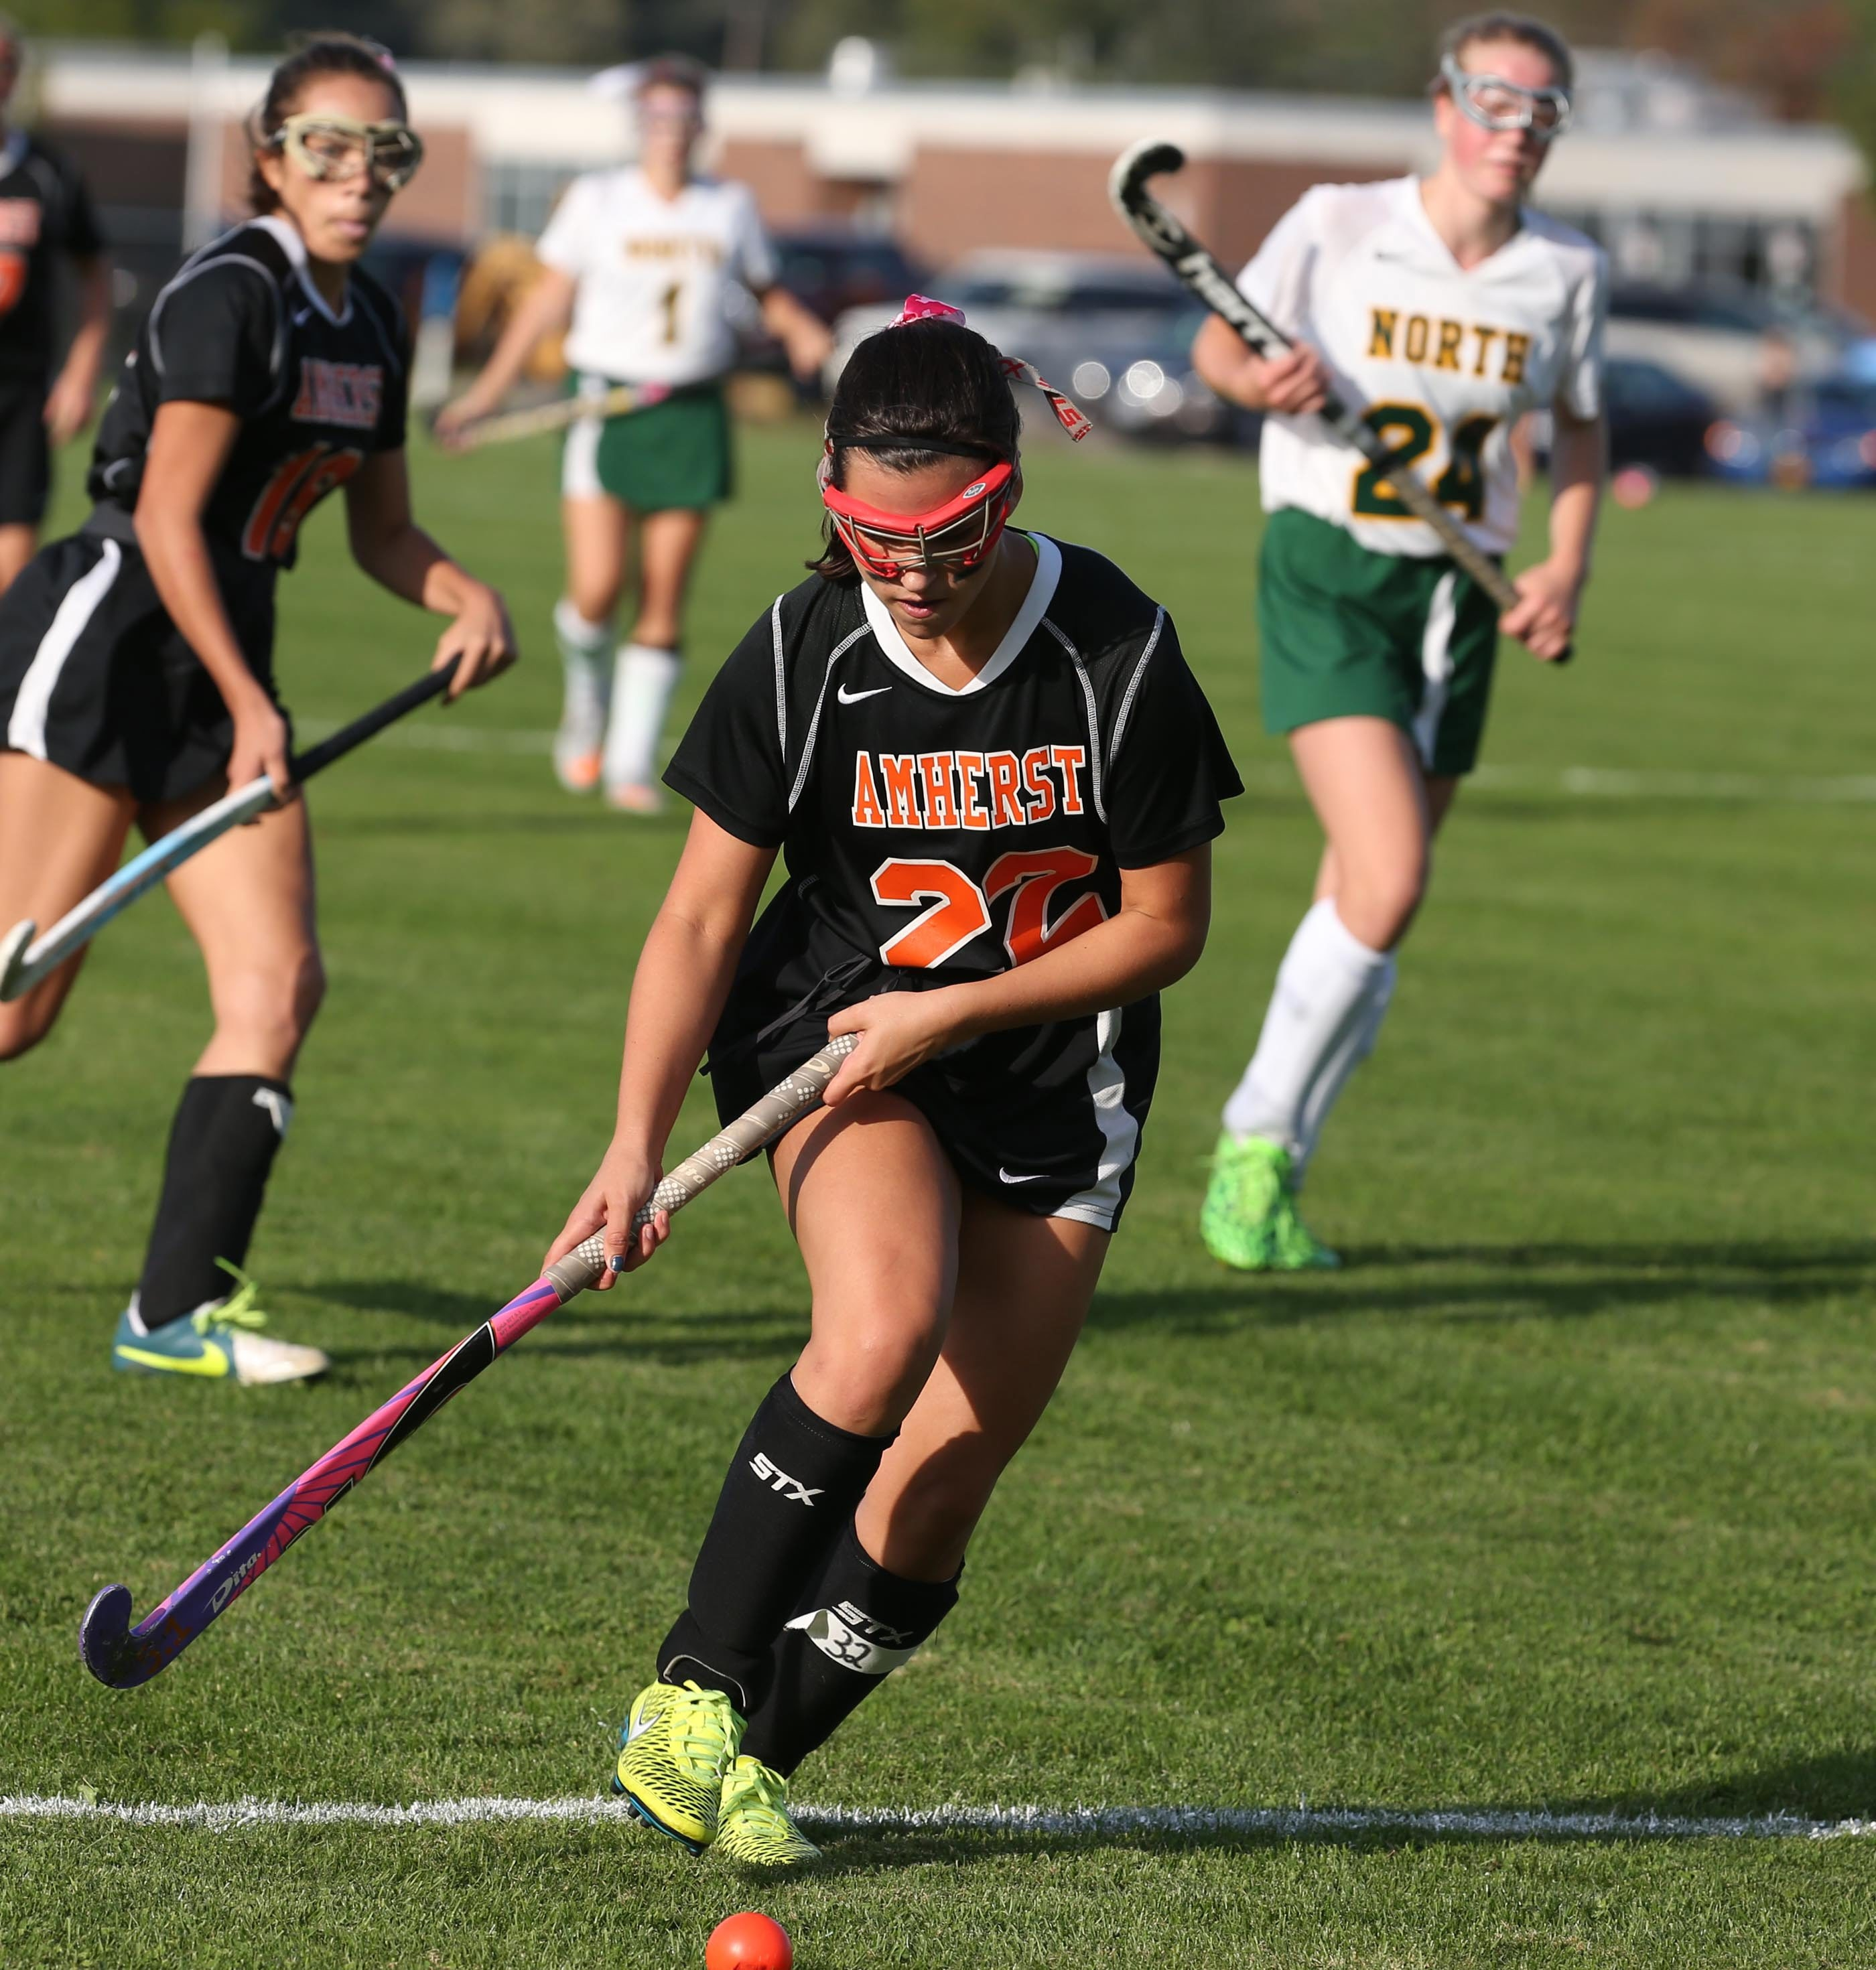 Amherst's Molly Minigell heads down the field during the Tigers' 3-0 win over Williamsville North Friday.